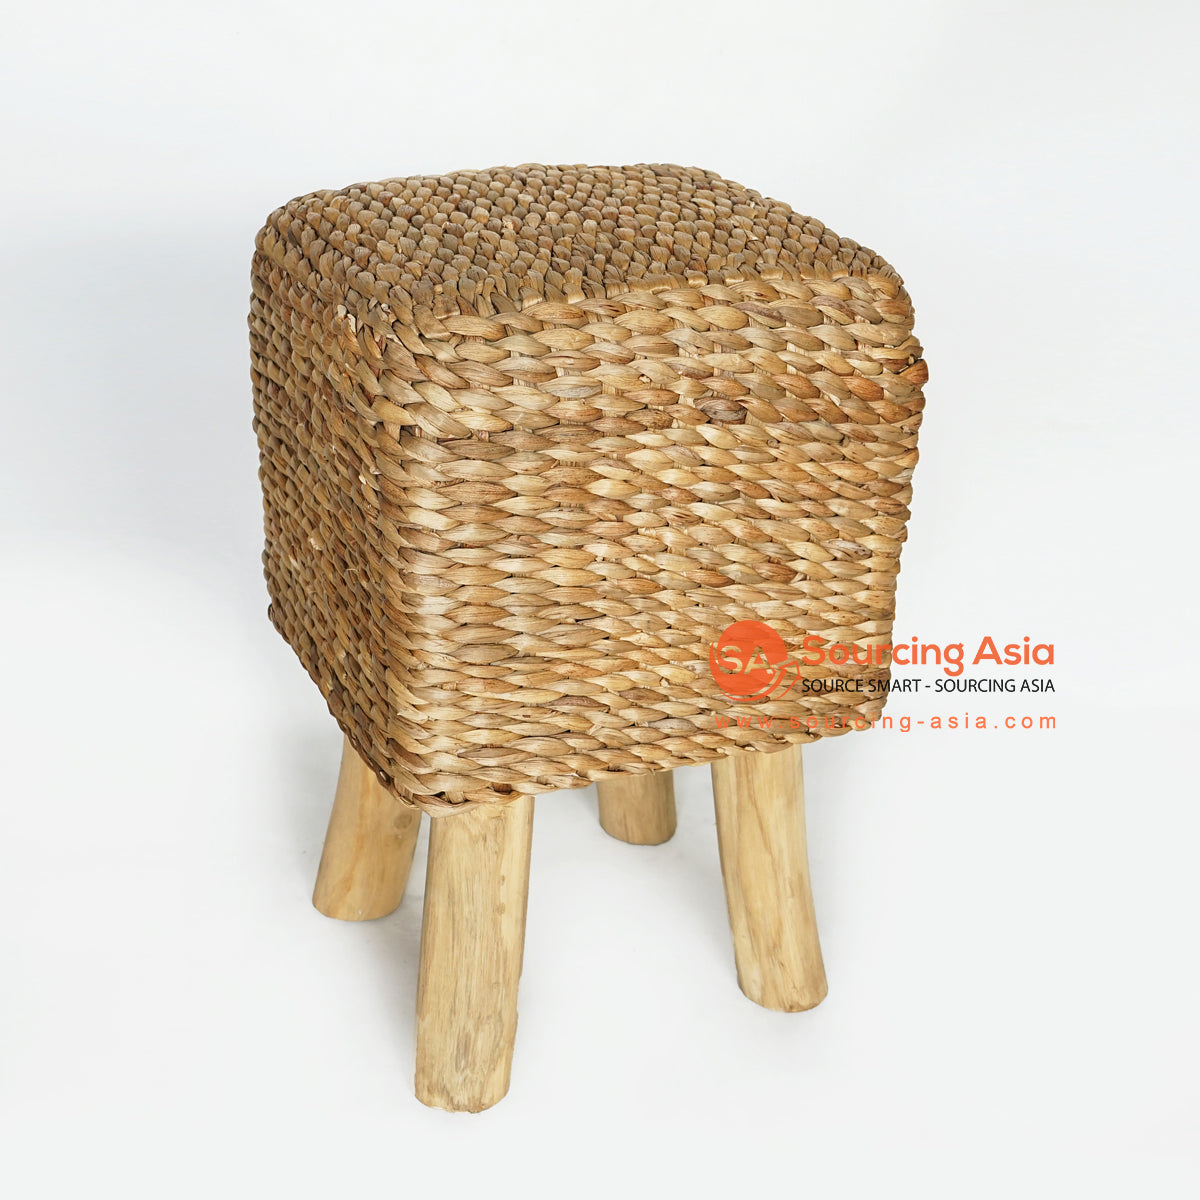 MRC156 NATURAL WOODEN SQUARE STOOL WITH WATER HYACINTH SEAT